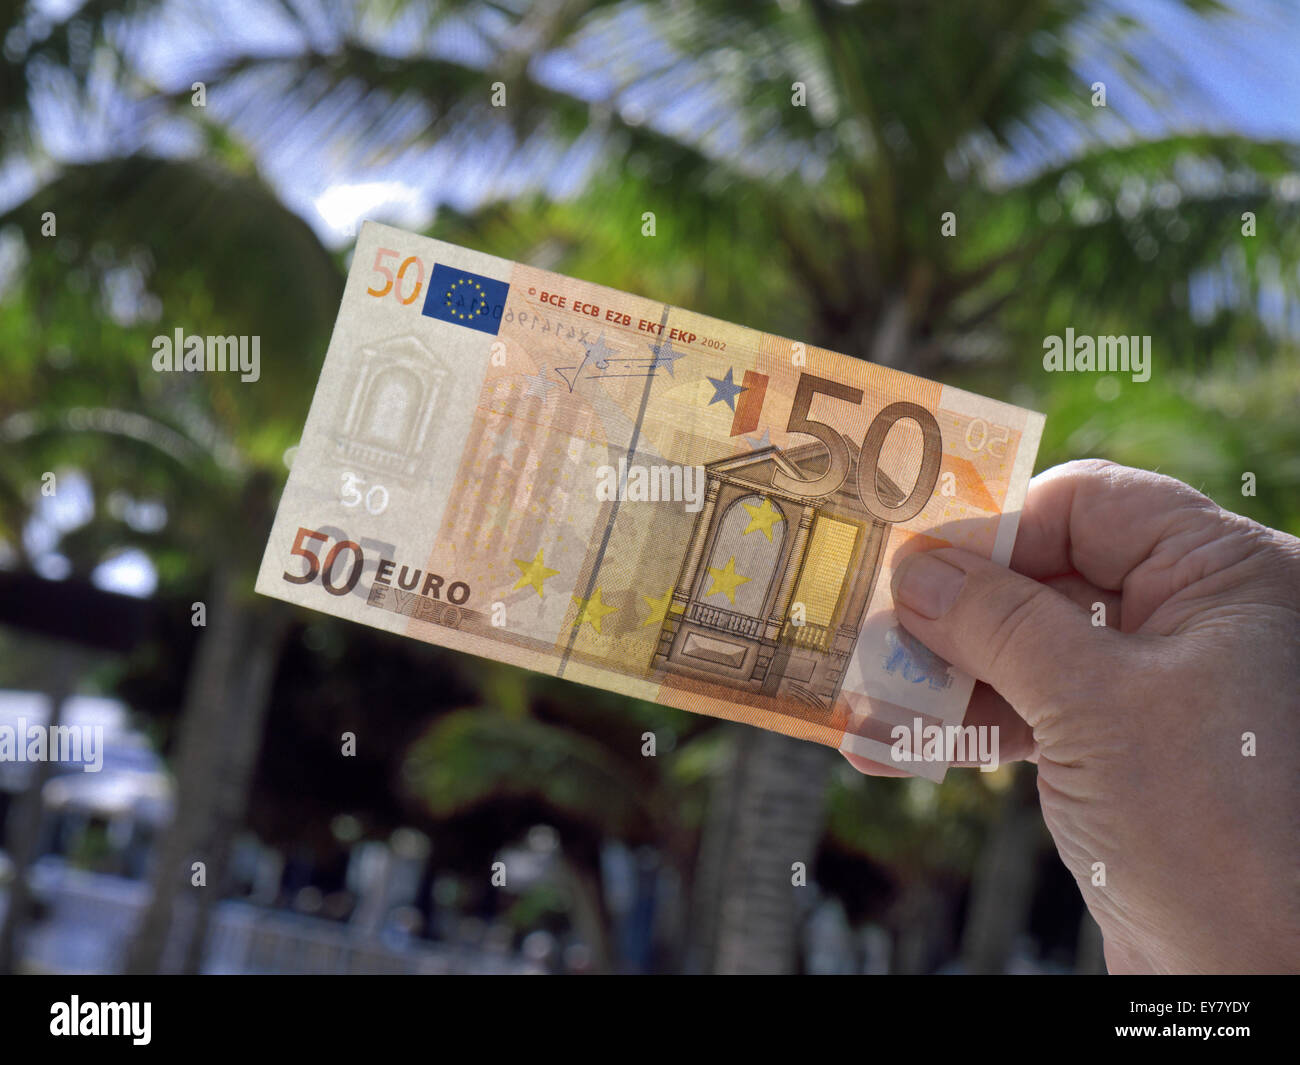 Fifty Euro Note Stock Photos & Fifty Euro Note Stock Images